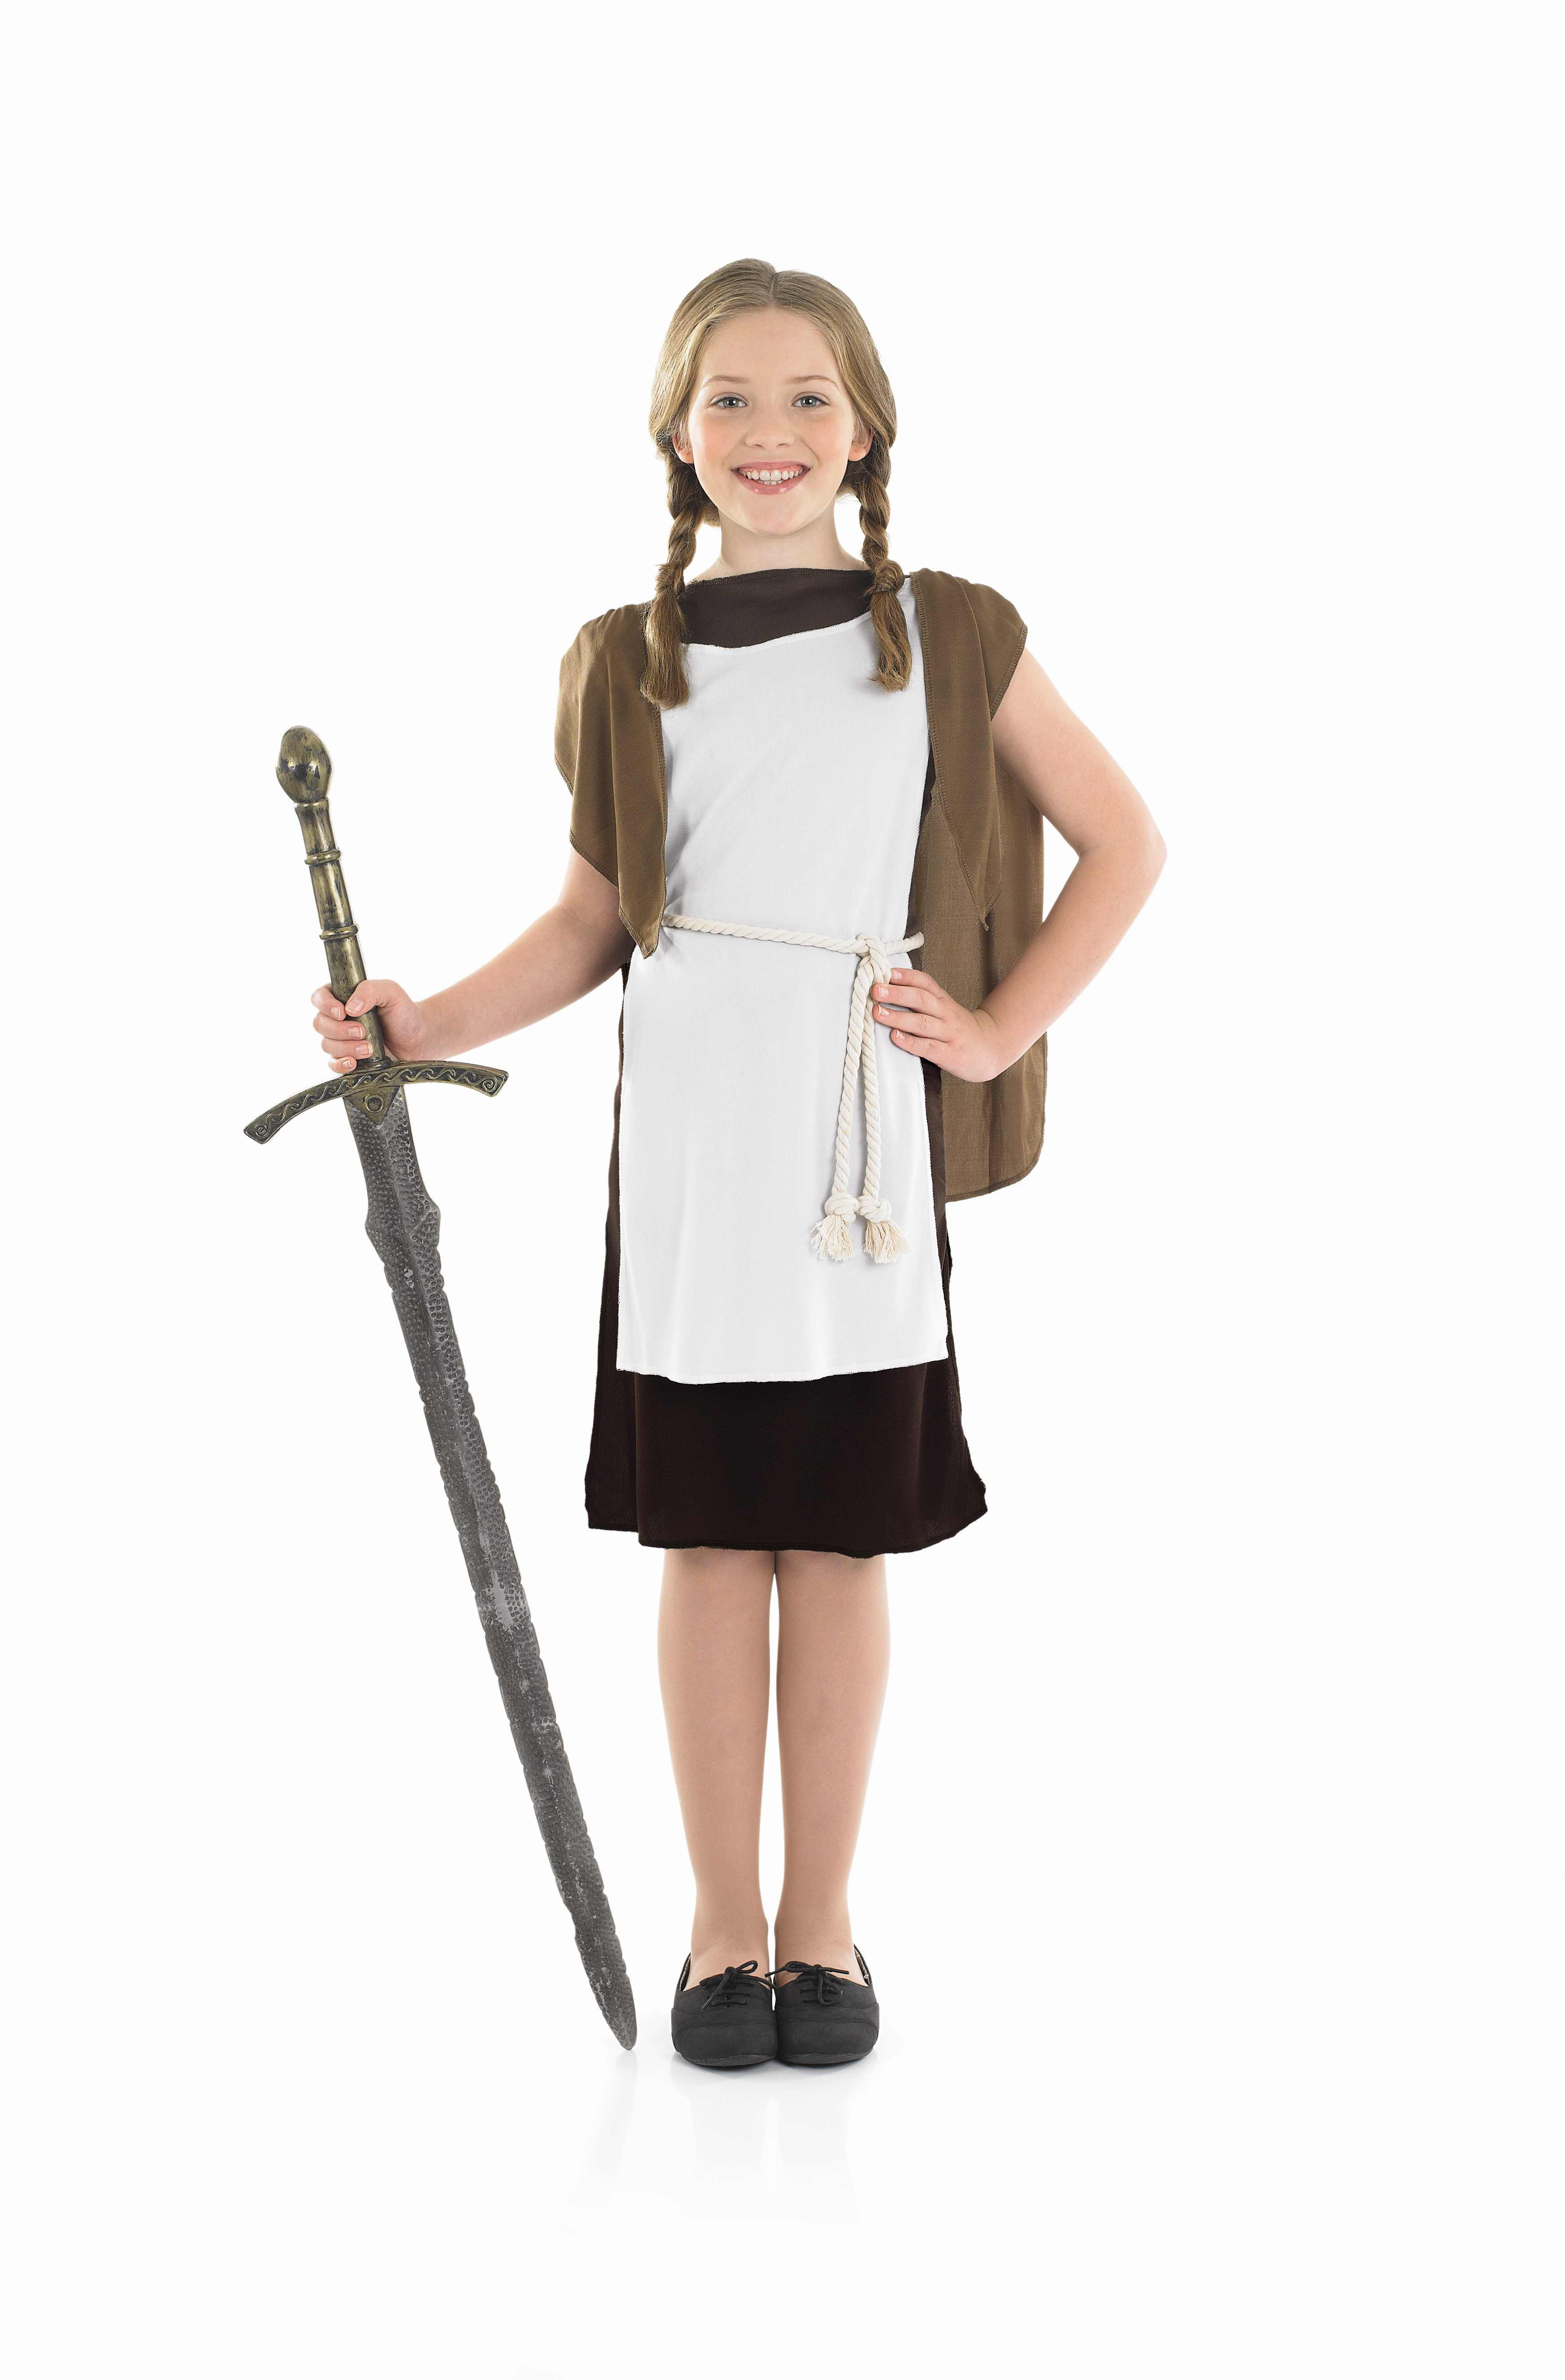 Girls Viking Girl Costume for Historic Book Day Fancy Dress Up Outfits